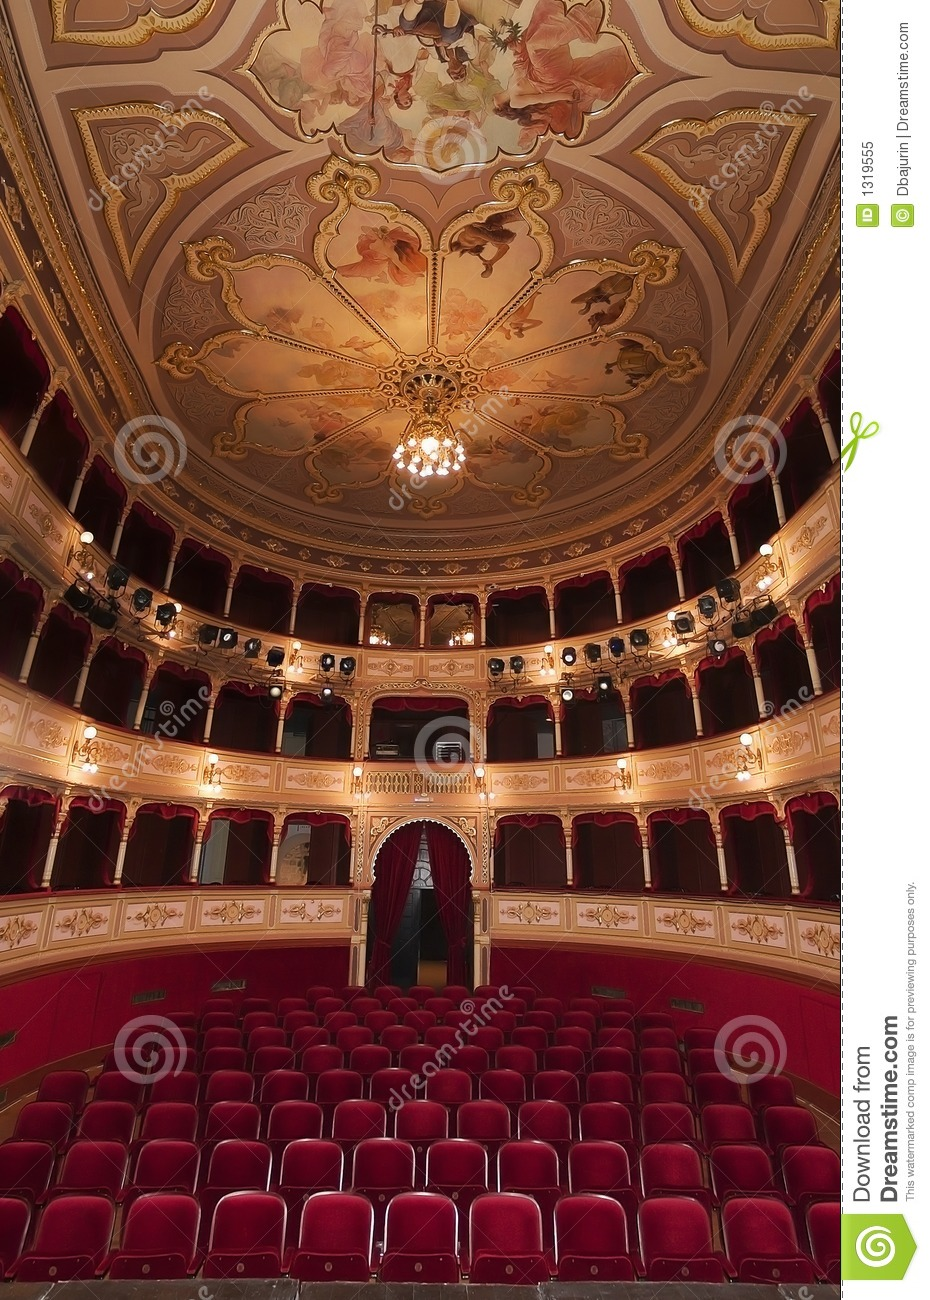 Old Theatre Venue Royalty Free Stock Photo Image 1319555